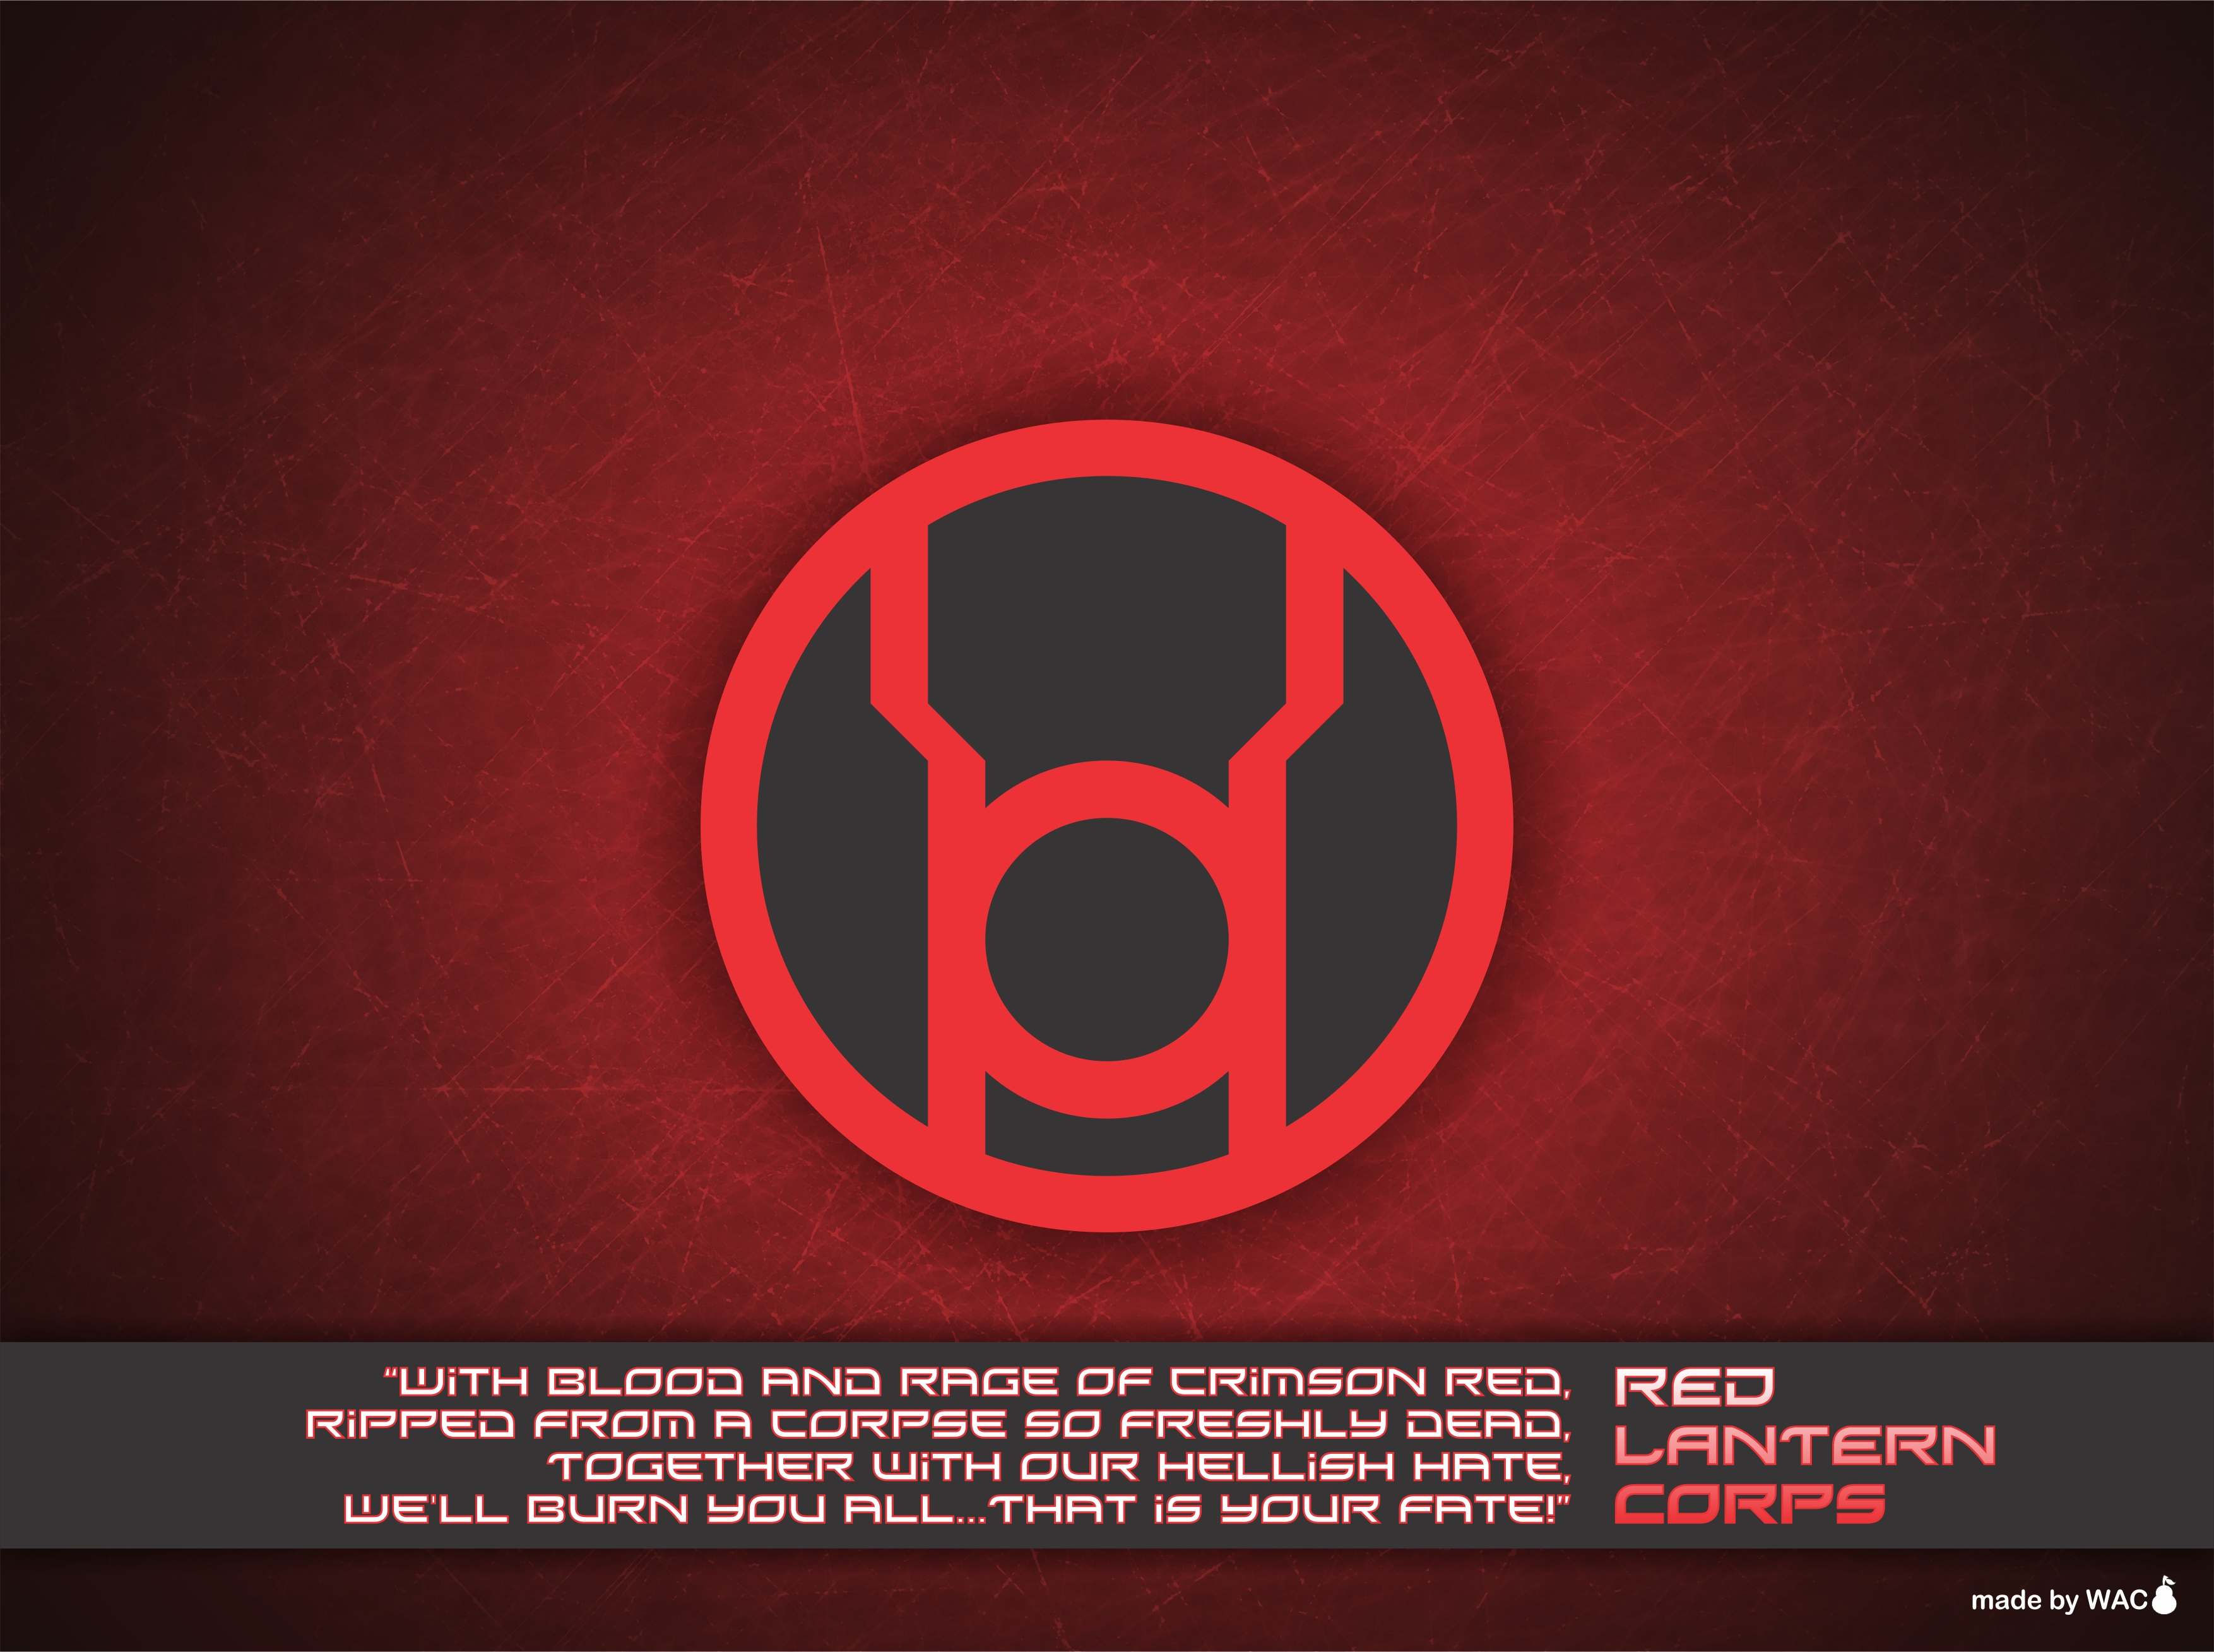 Red lantern corps symbol wallpaper - photo#28